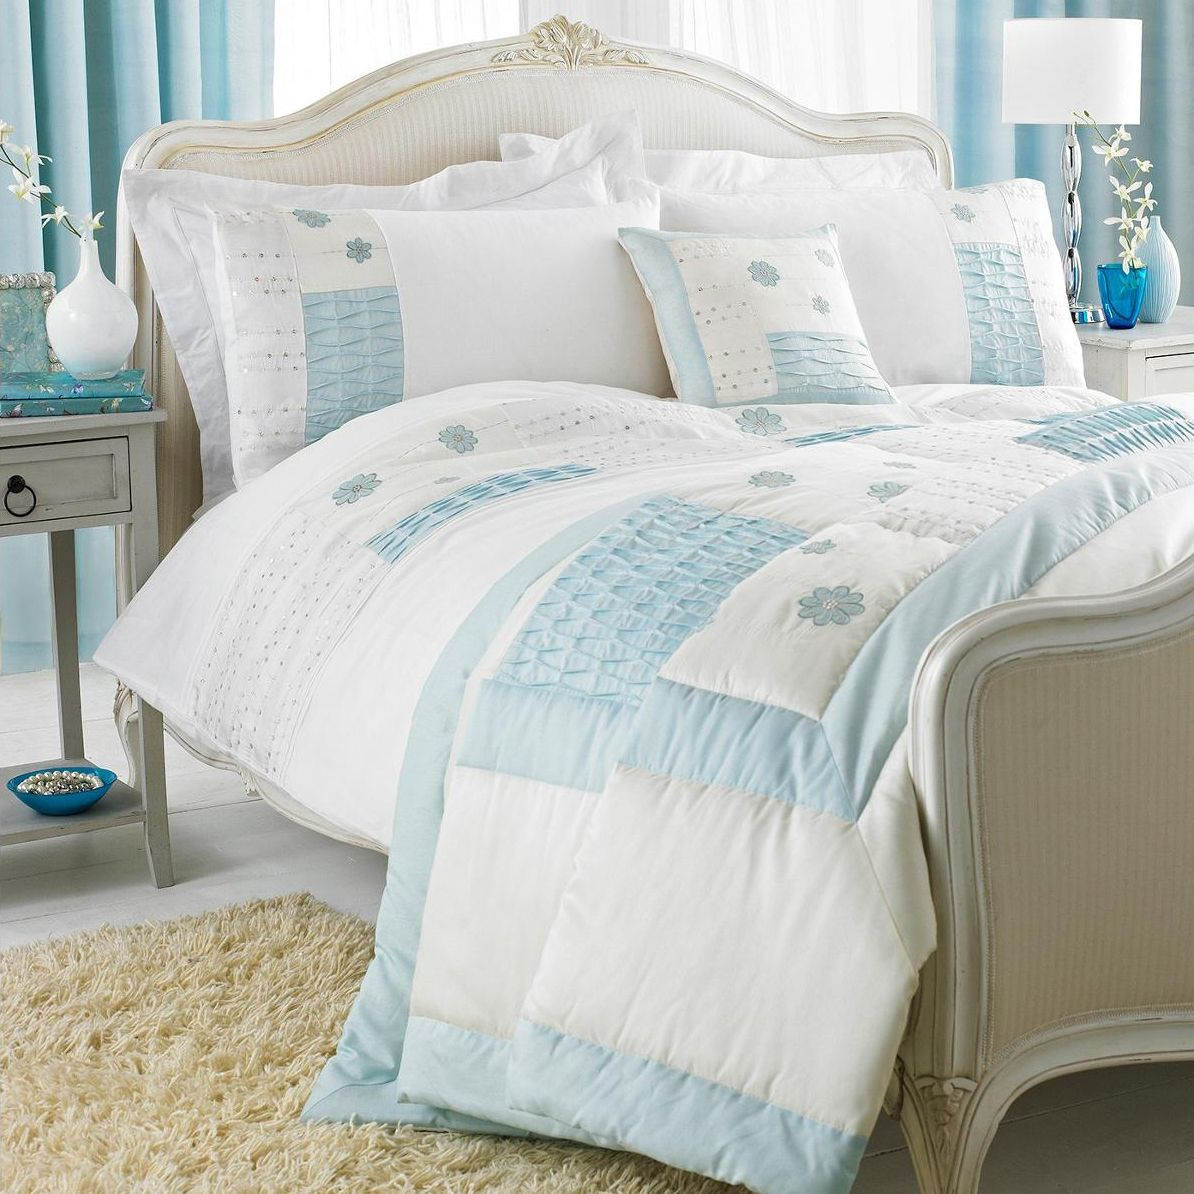 Paoletti New Freya Bedding Set In Duck Egg Blue Next Day Delivery